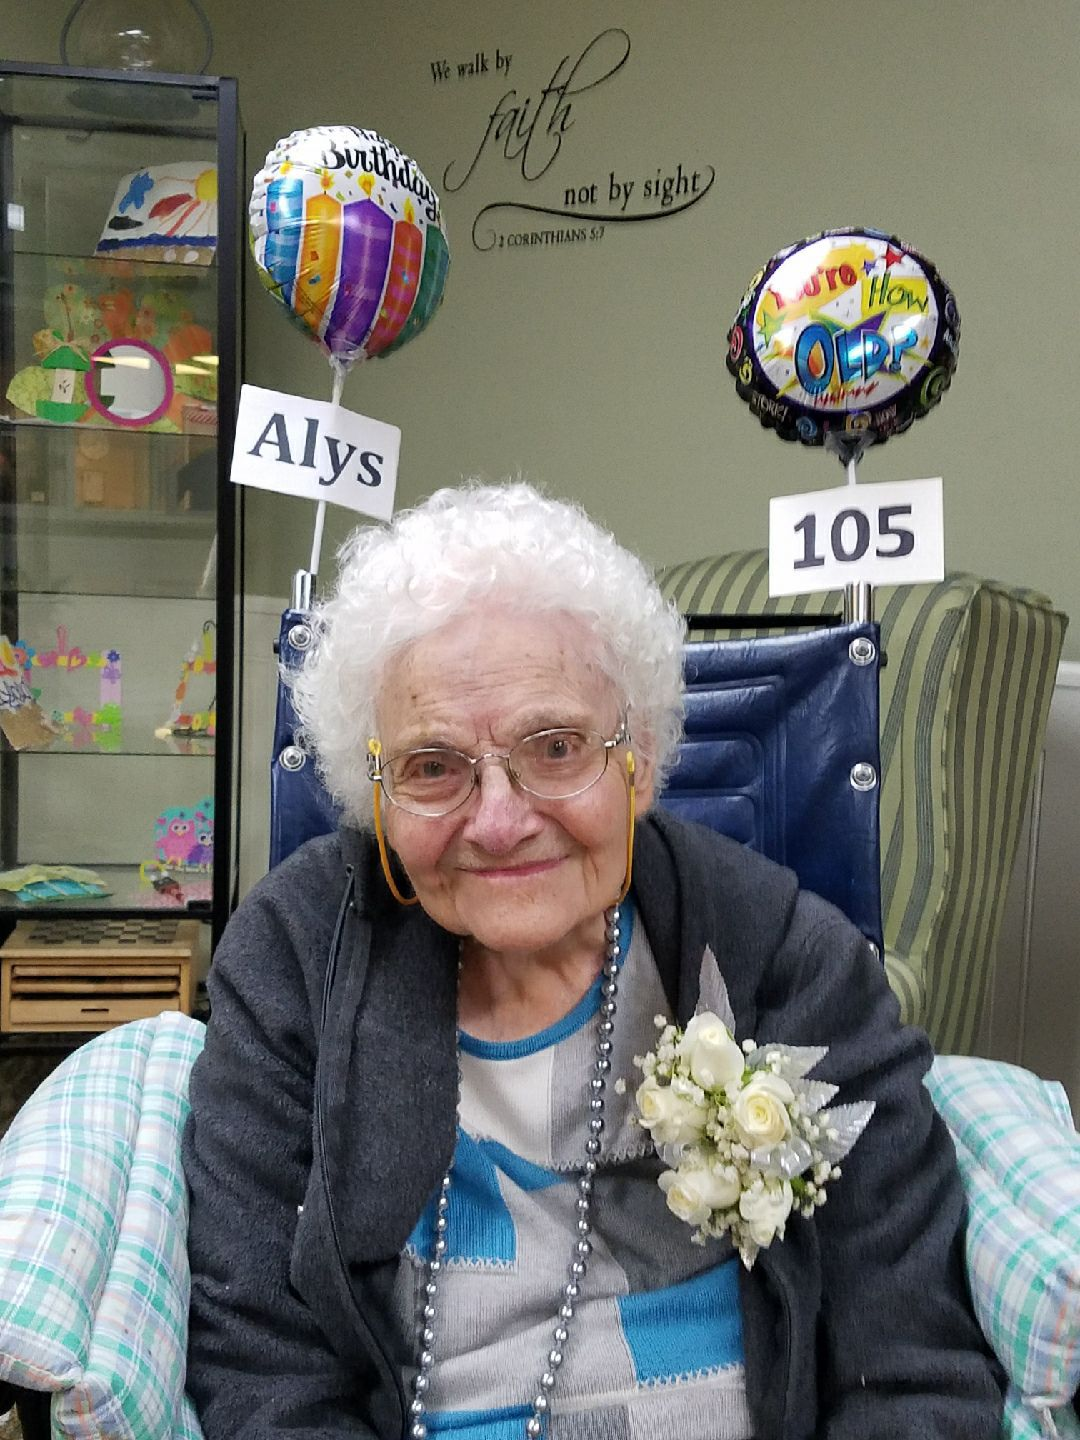 Alys Helfen celebrates 105th birthday!